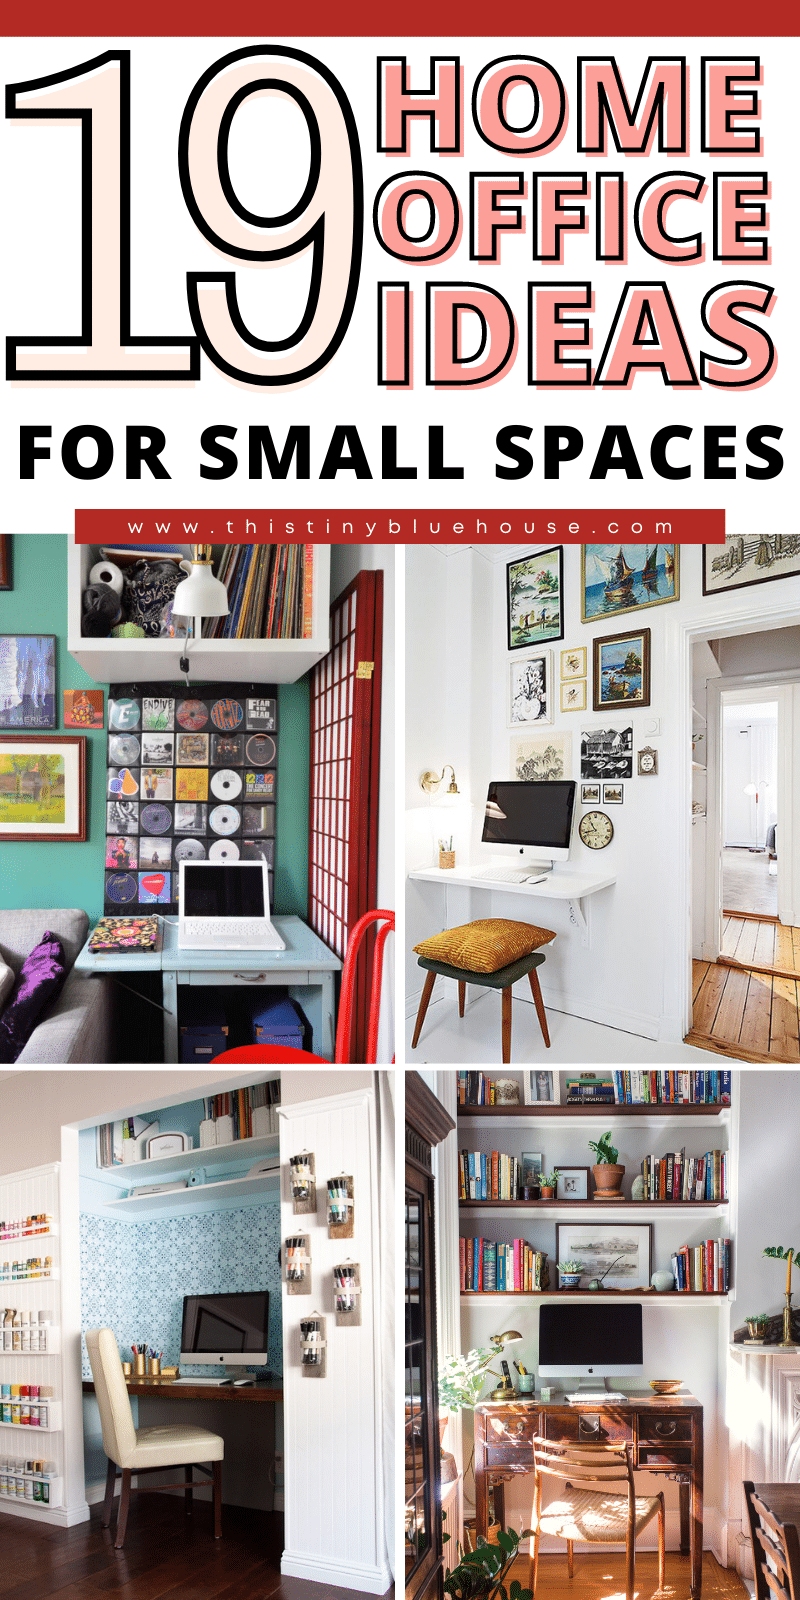 19 inspiring small space home office ideas